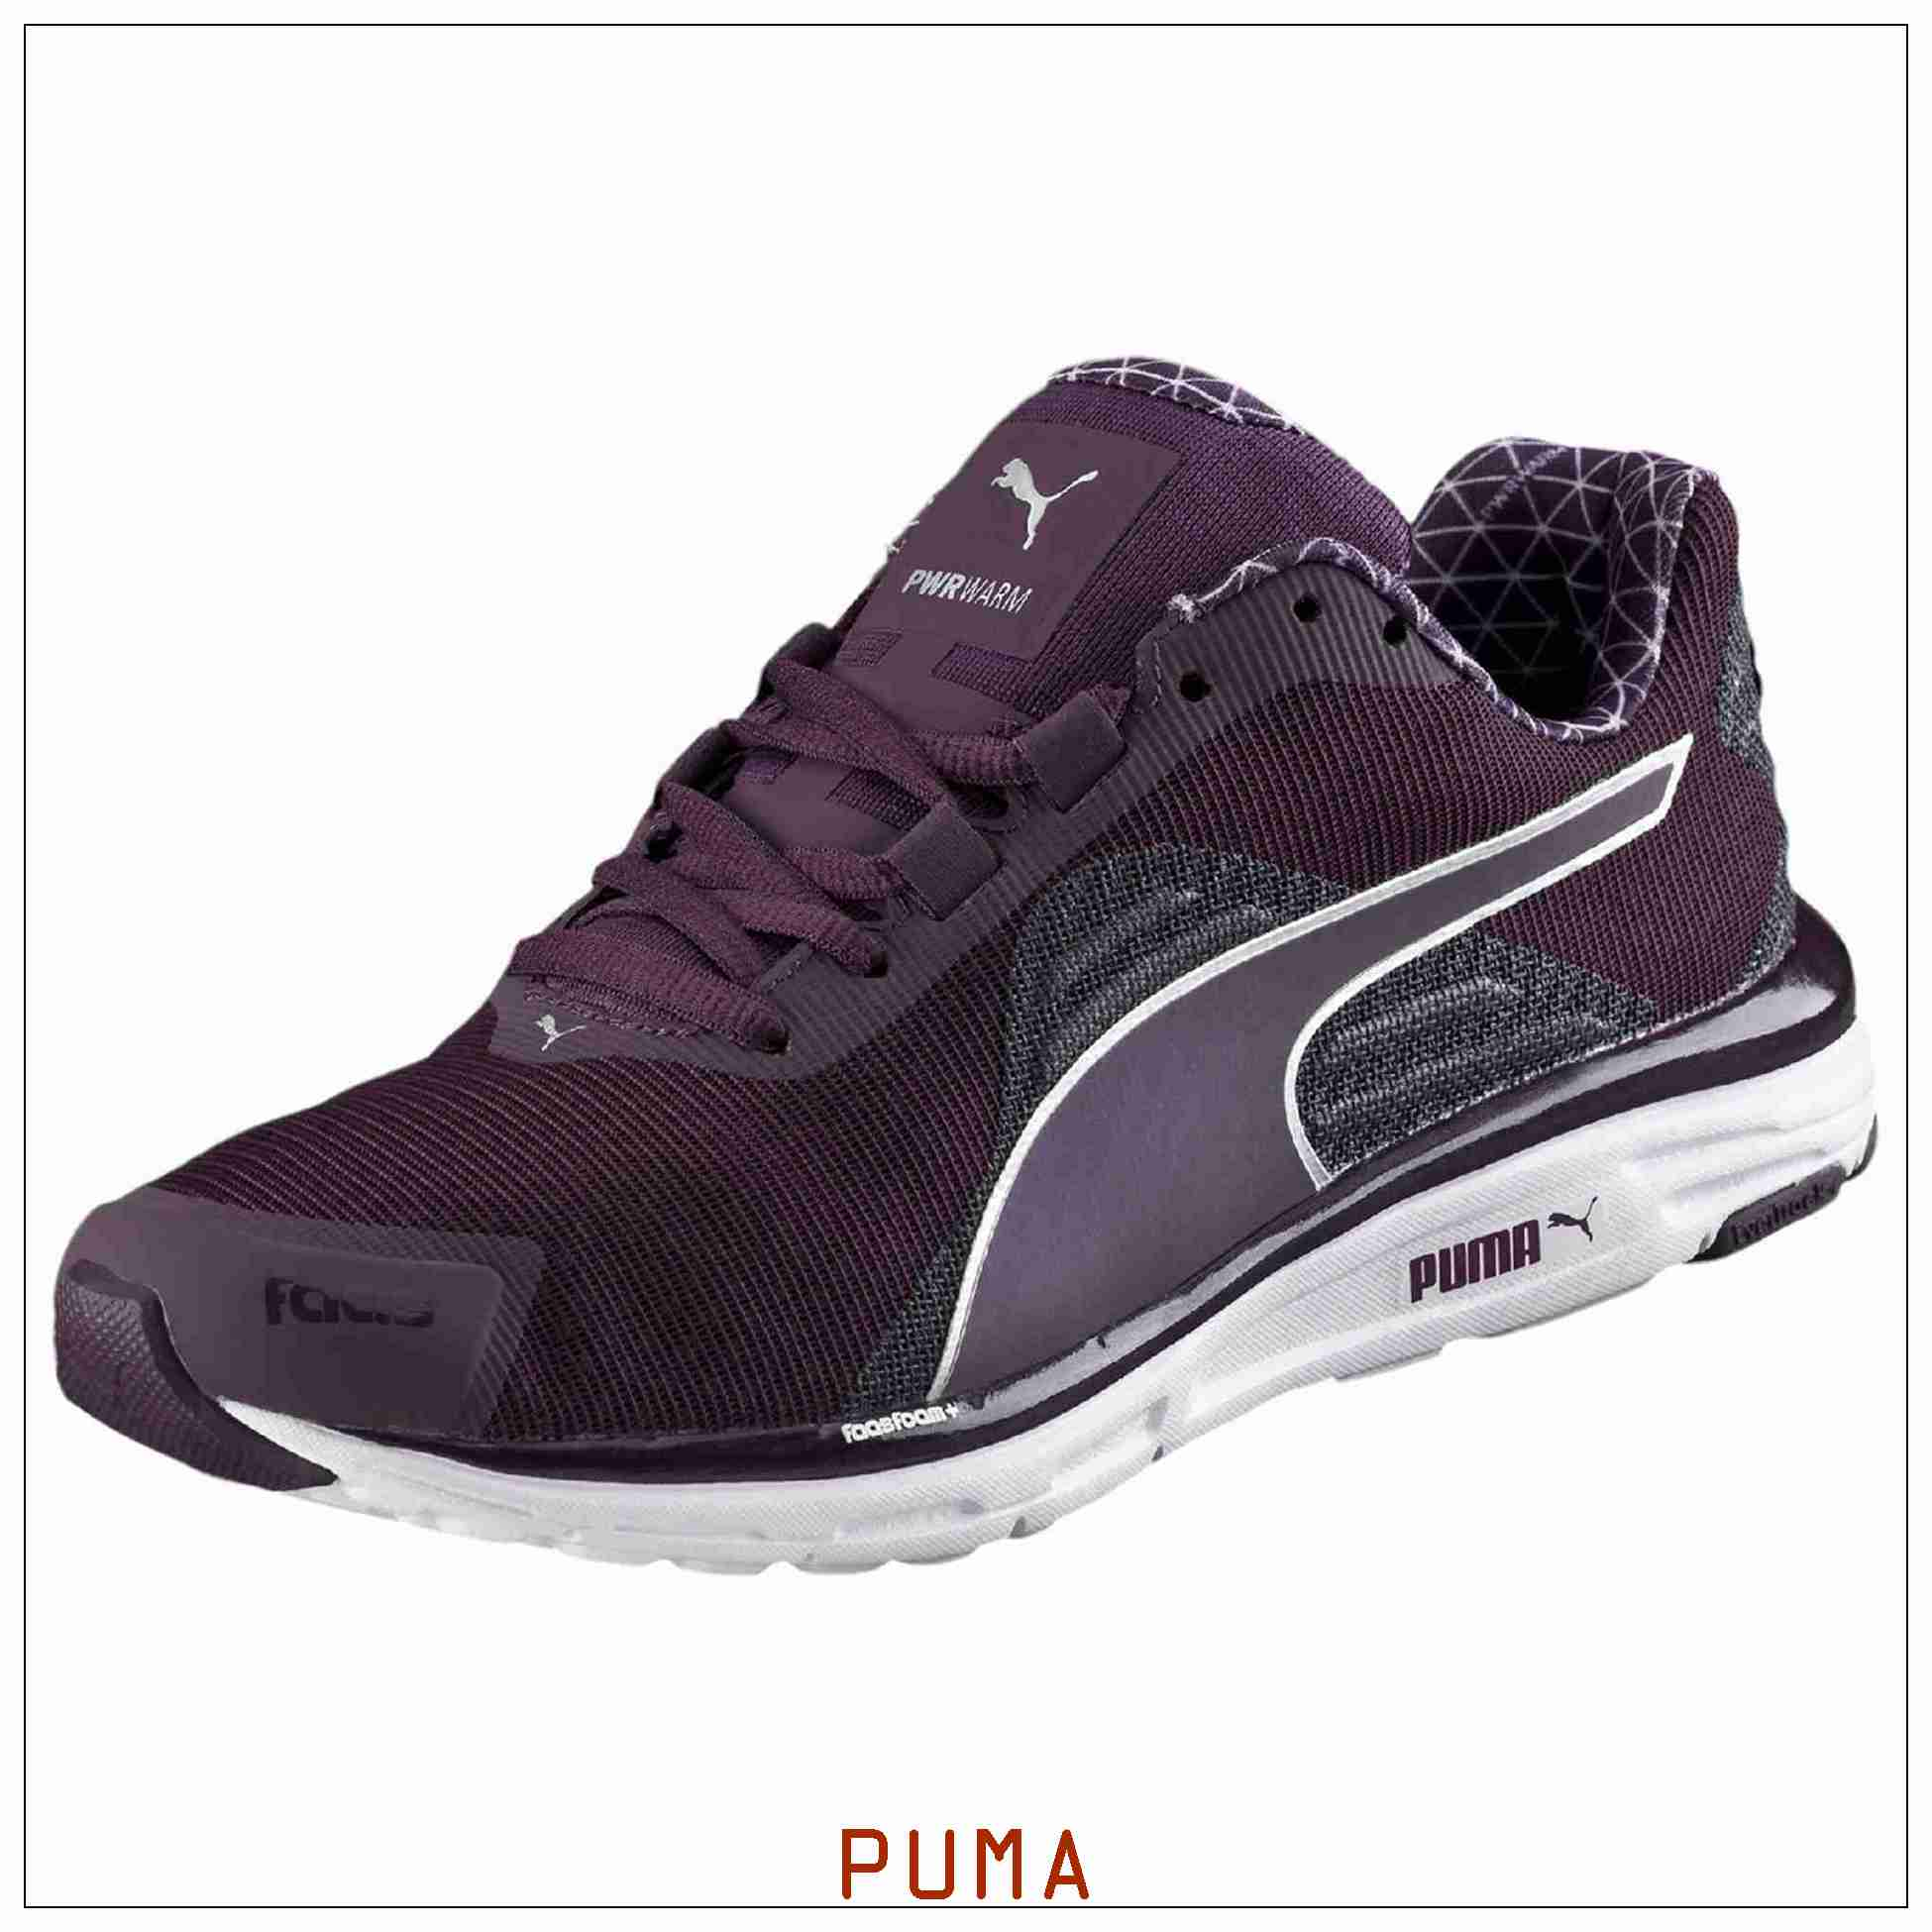 puma shoes in australia